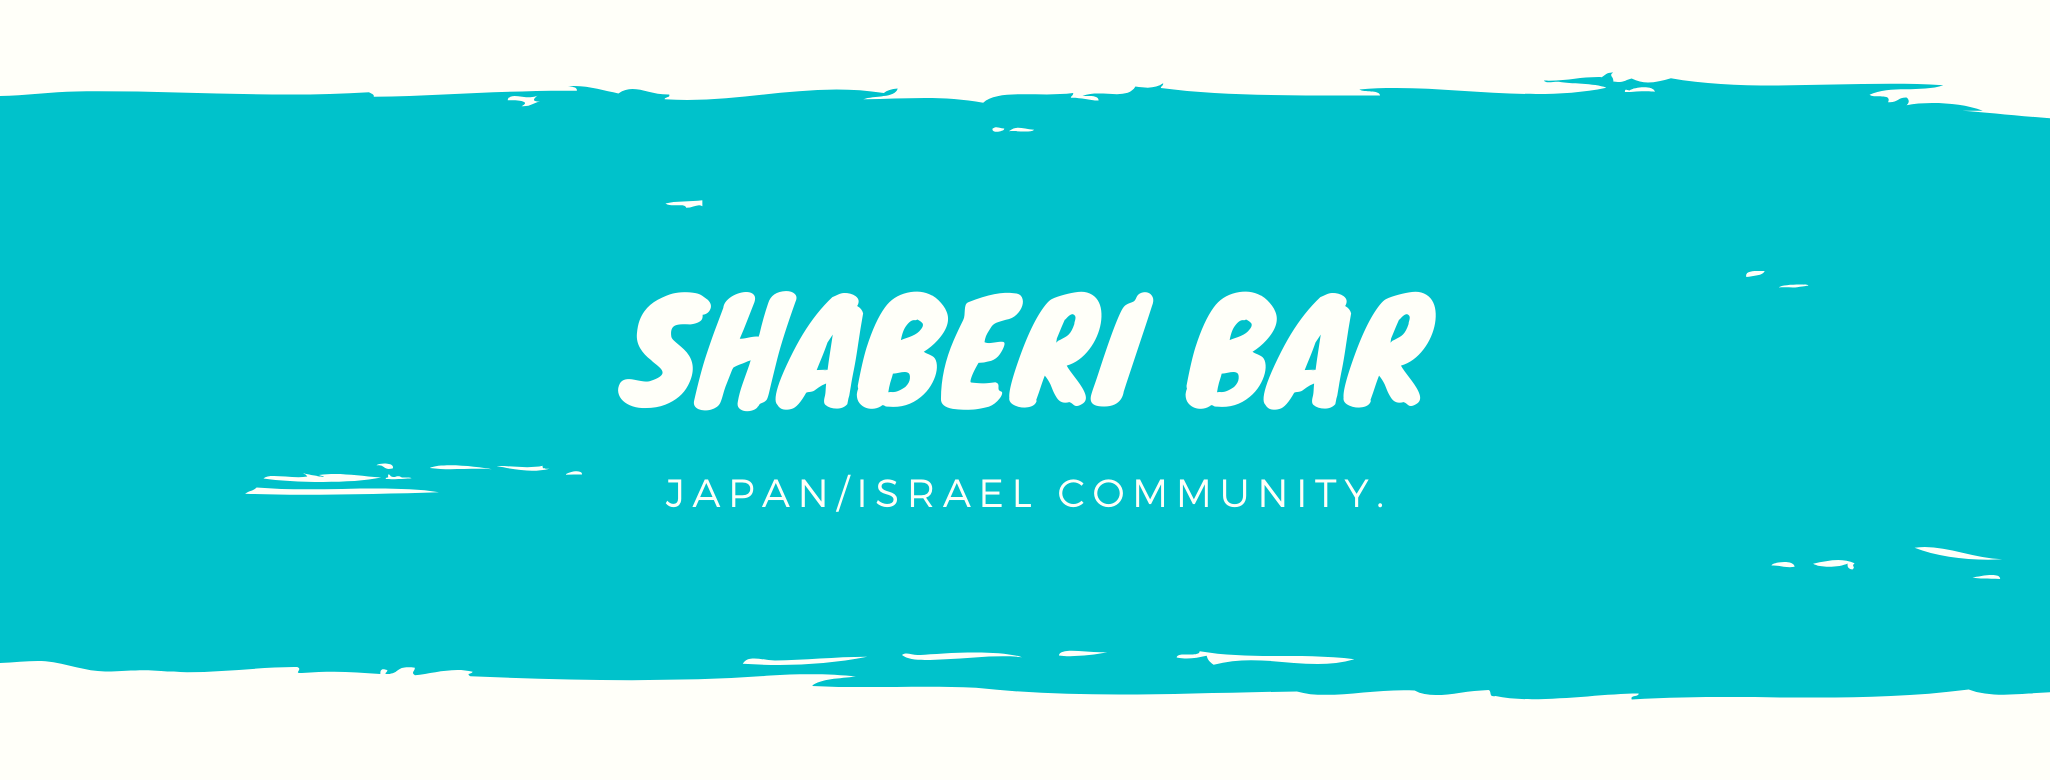 Shaberi BAR